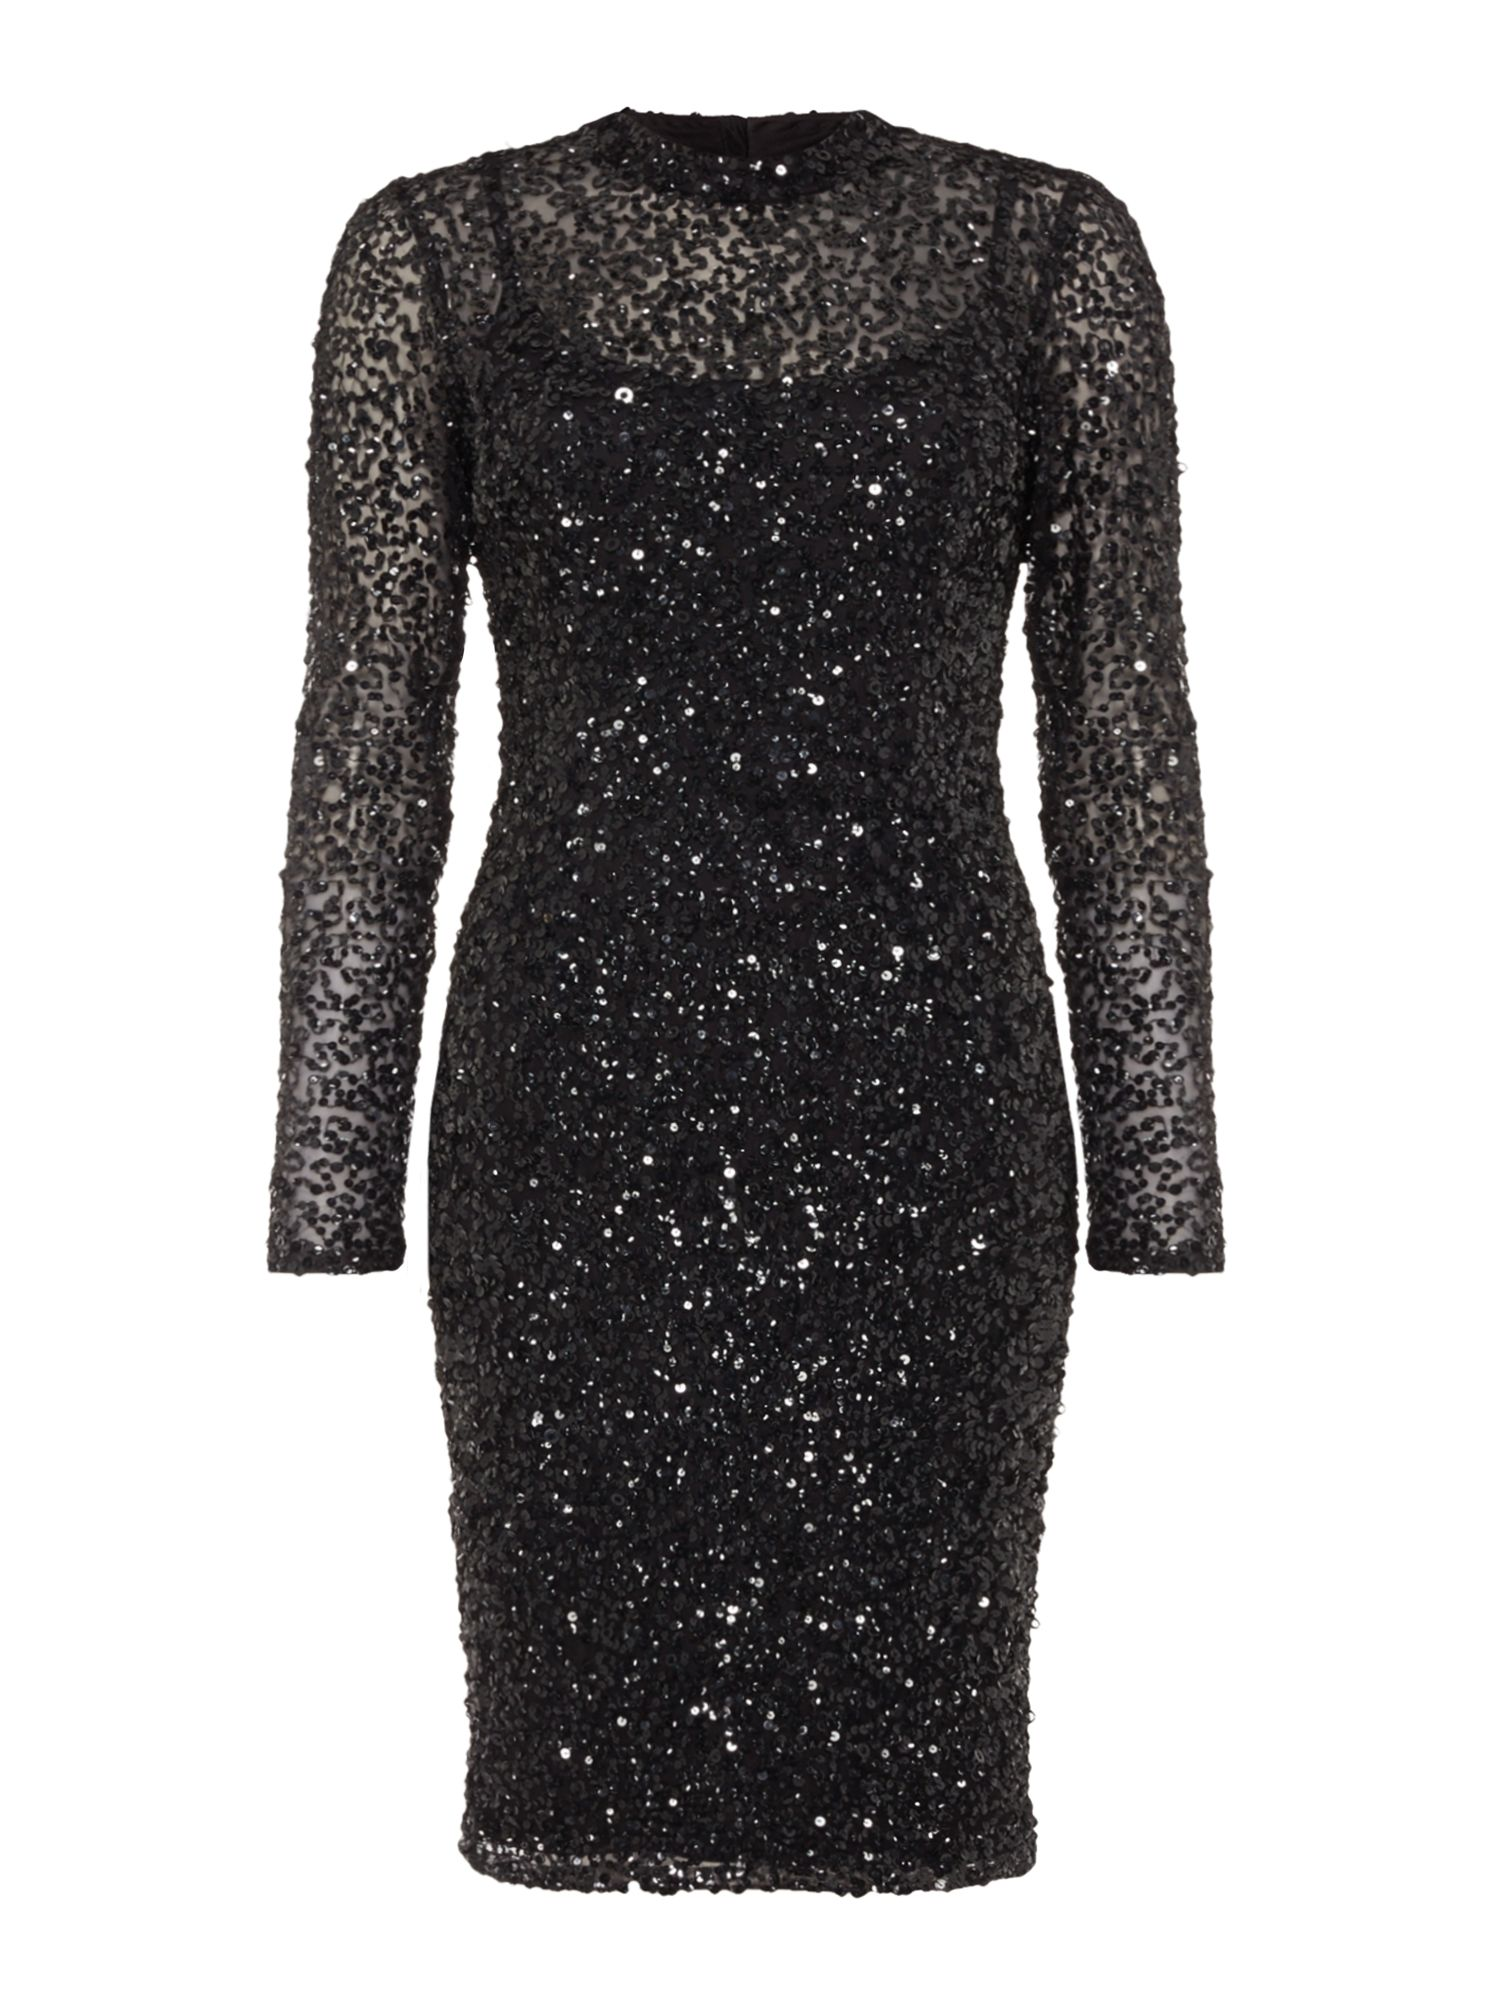 Adrianna Papell Long sleeve sequin dress, Black